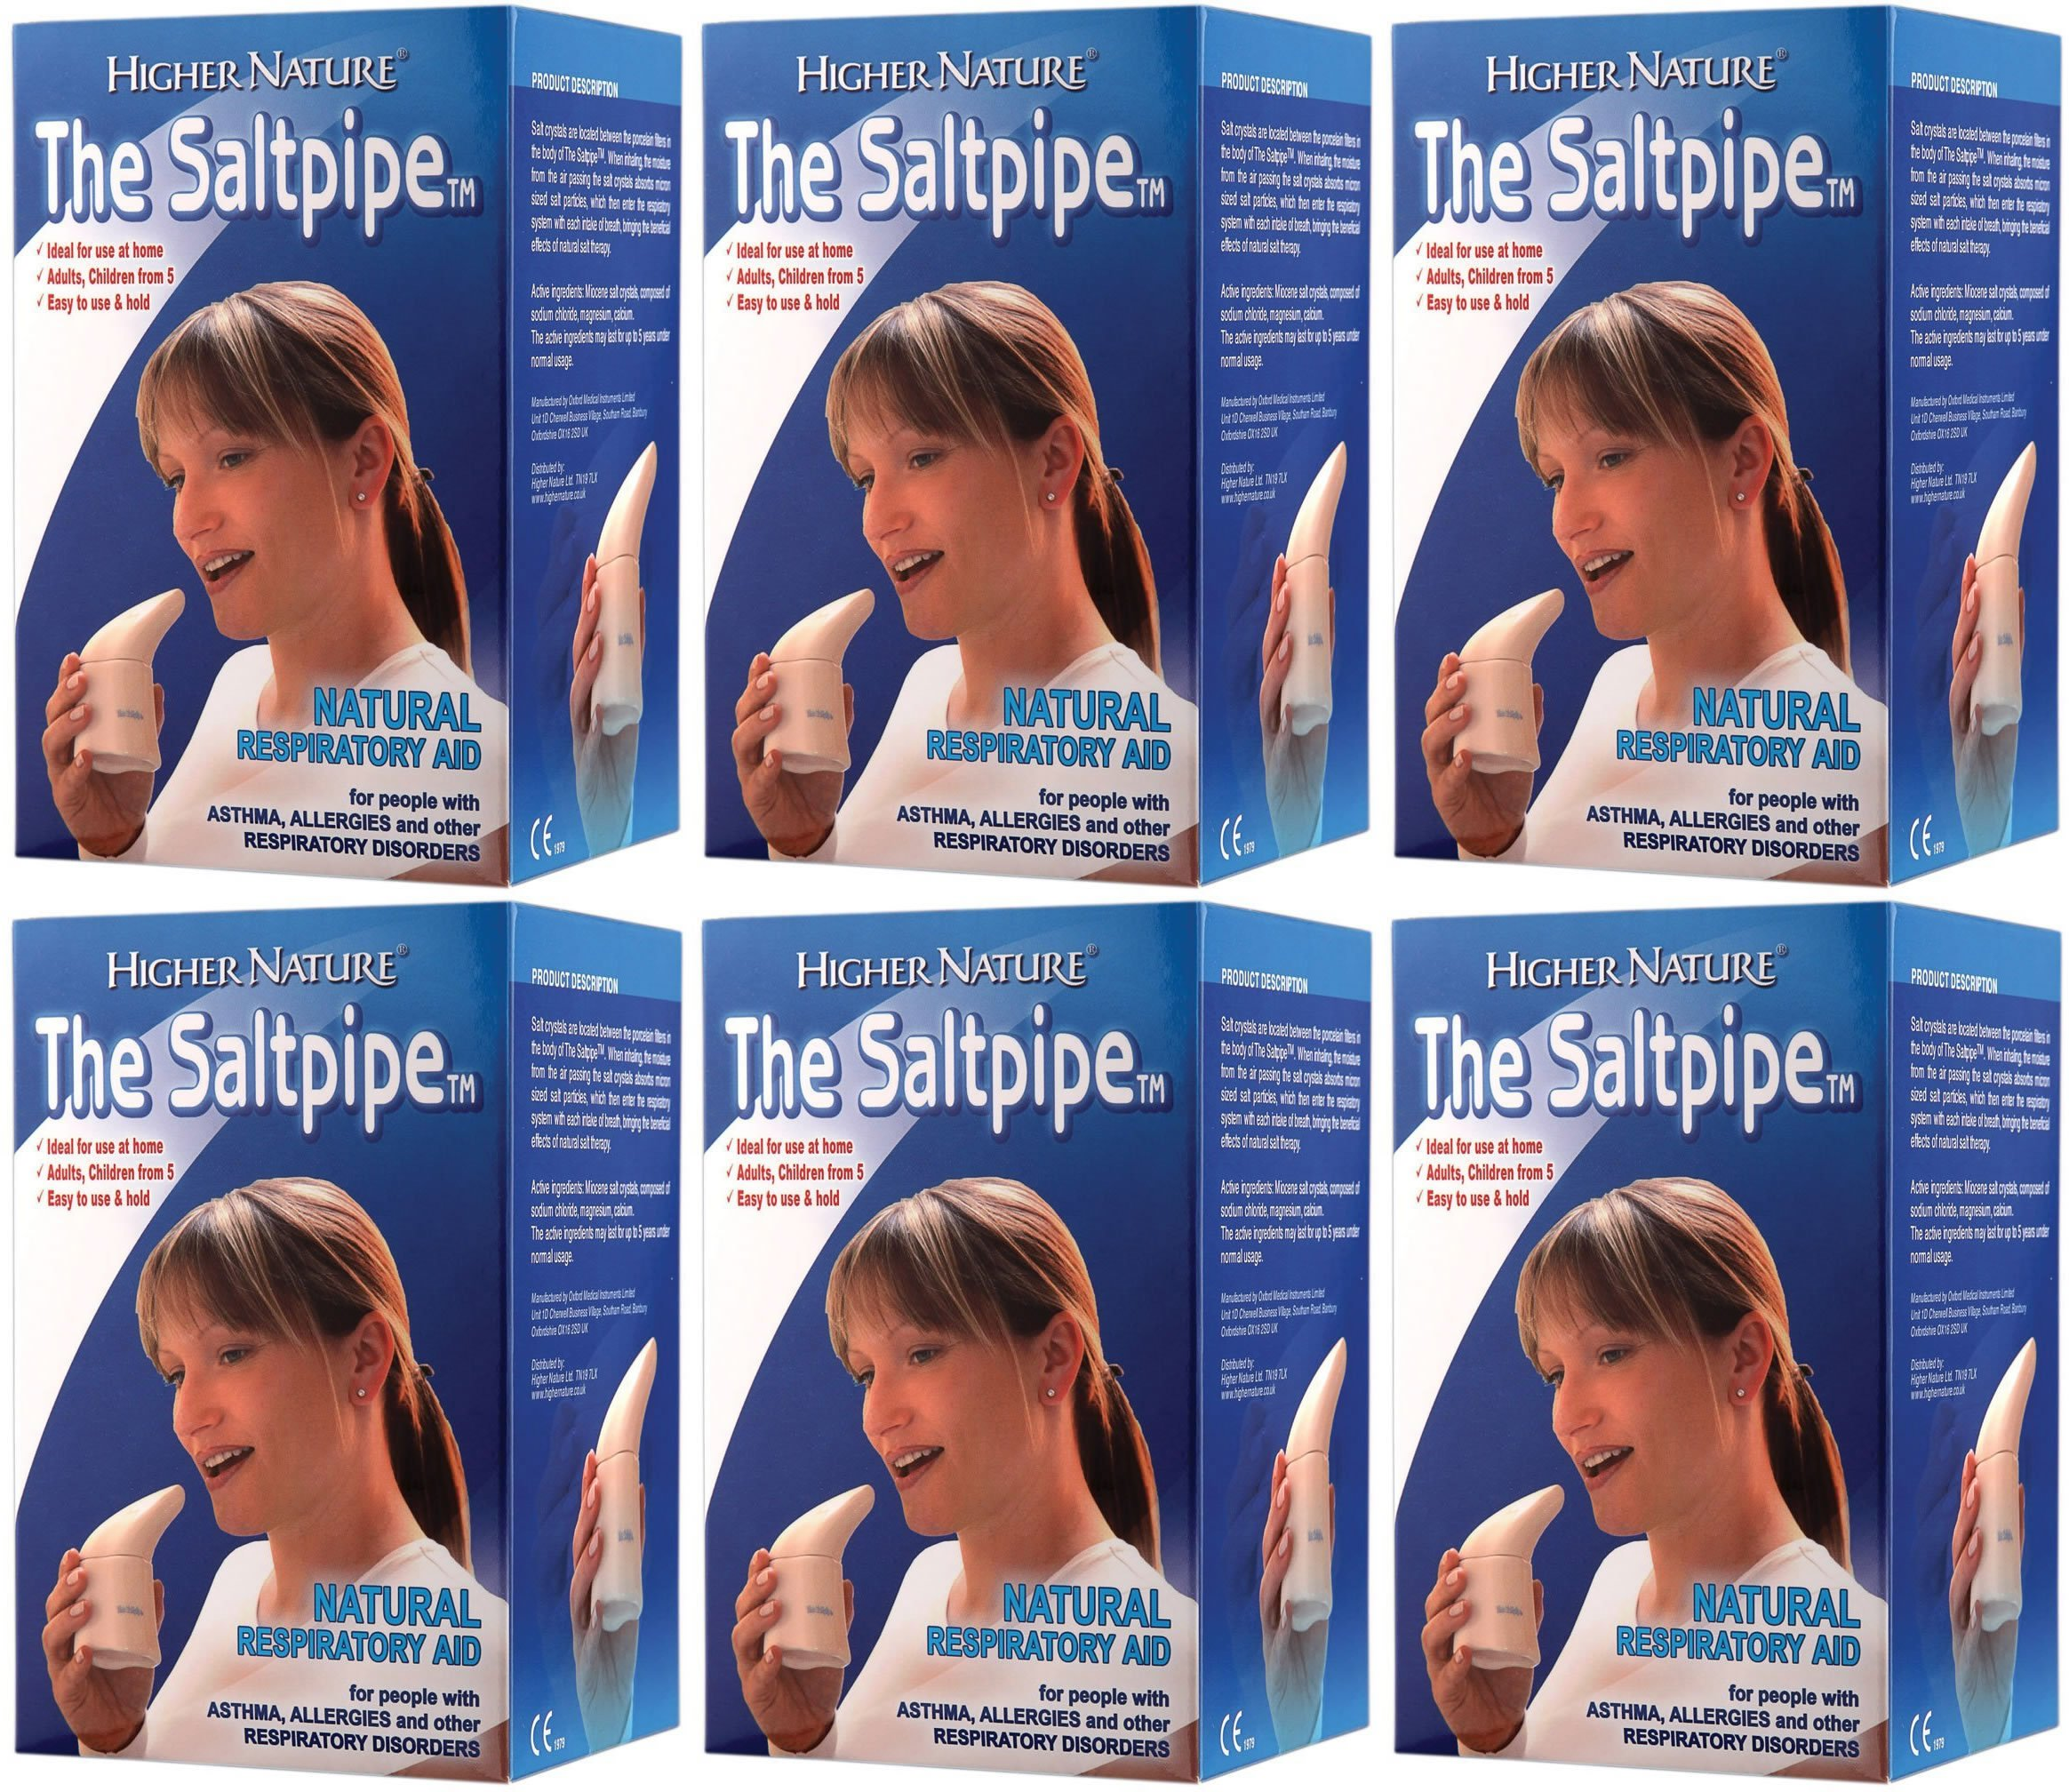 (6 PACK) - Higher Nature - Saltpipe | 1 box | 6 PACK BUNDLE by Higher Nature